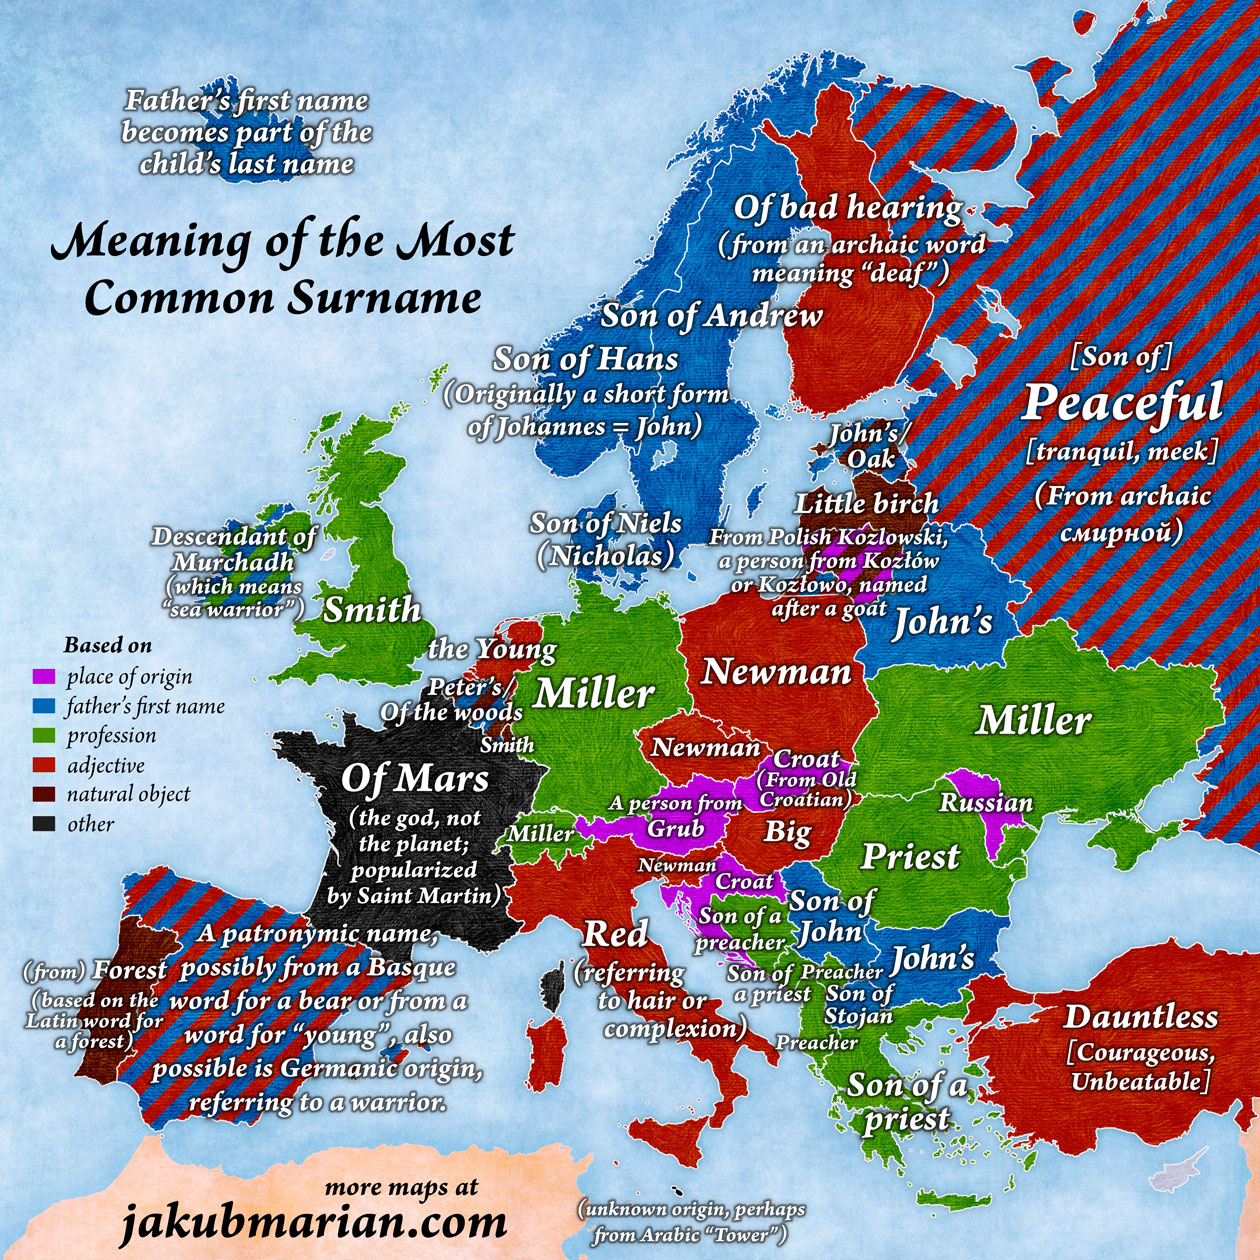 pic this map shows the most common surname in every country in